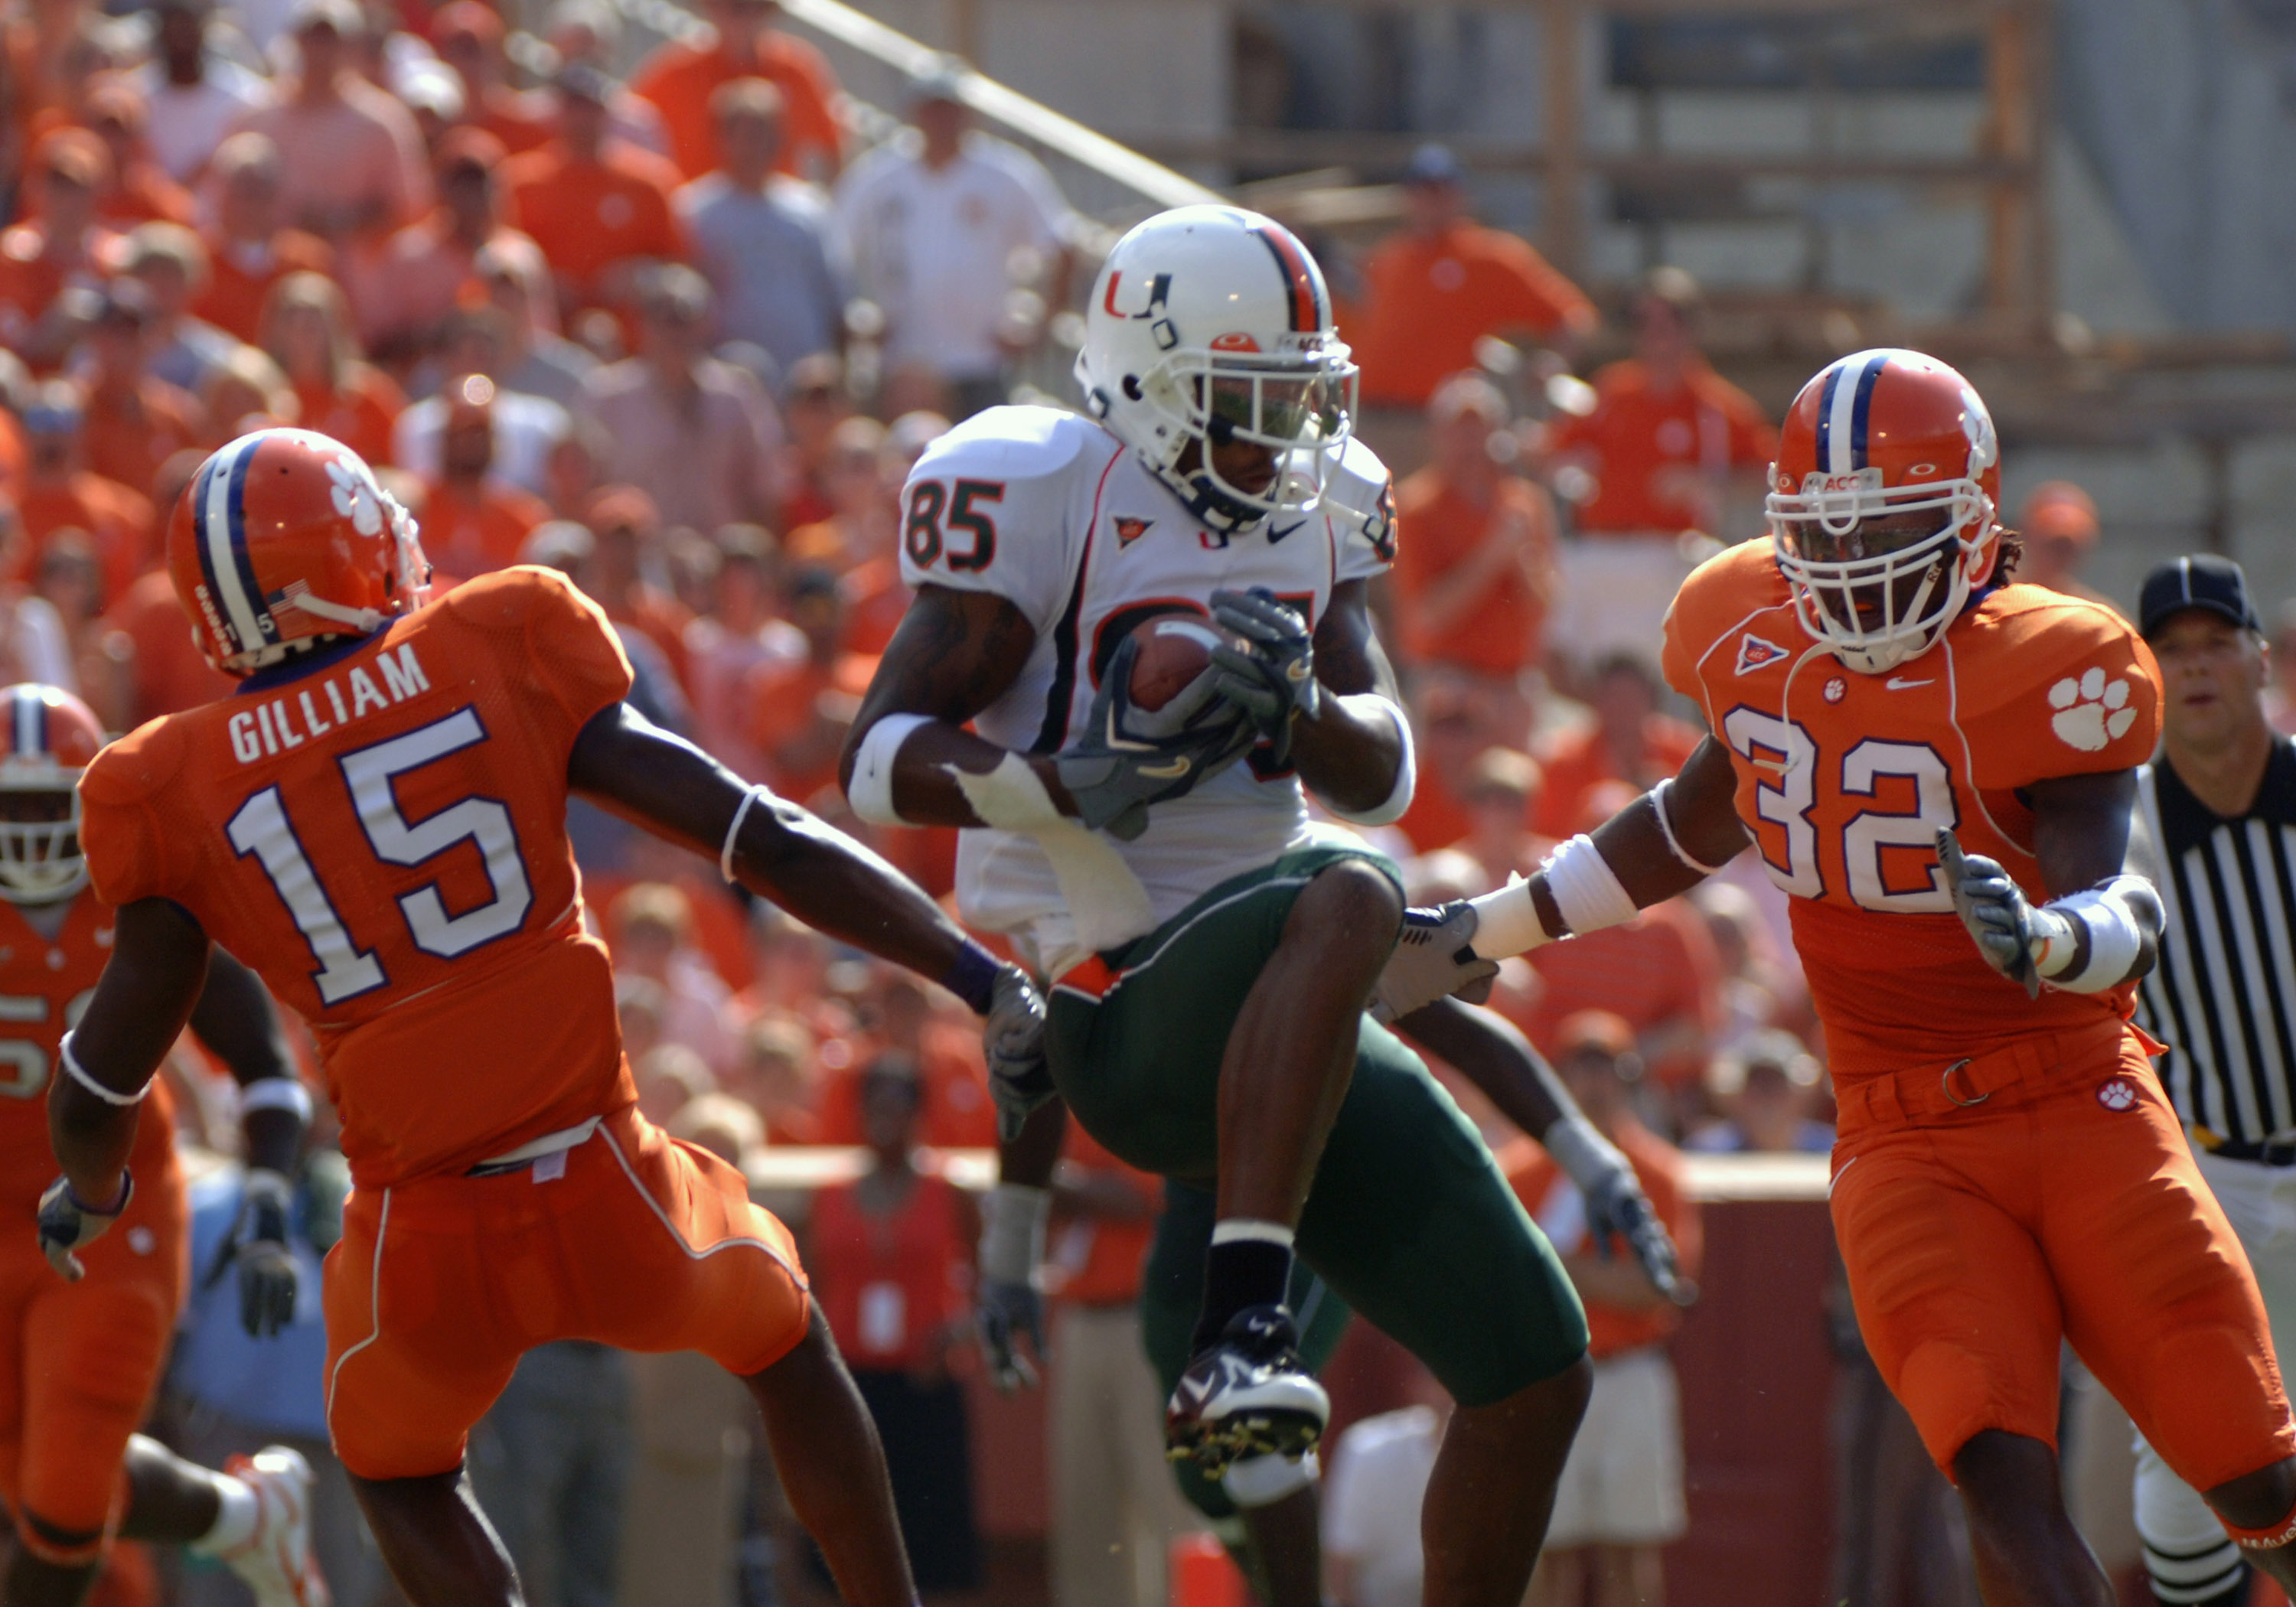 University of Miami wide receiver Ryan Moore grabs a pass over the middle against Clemson September 17, 2005 at Clemson. (Photo by A. Messerschmidt/Getty Images)